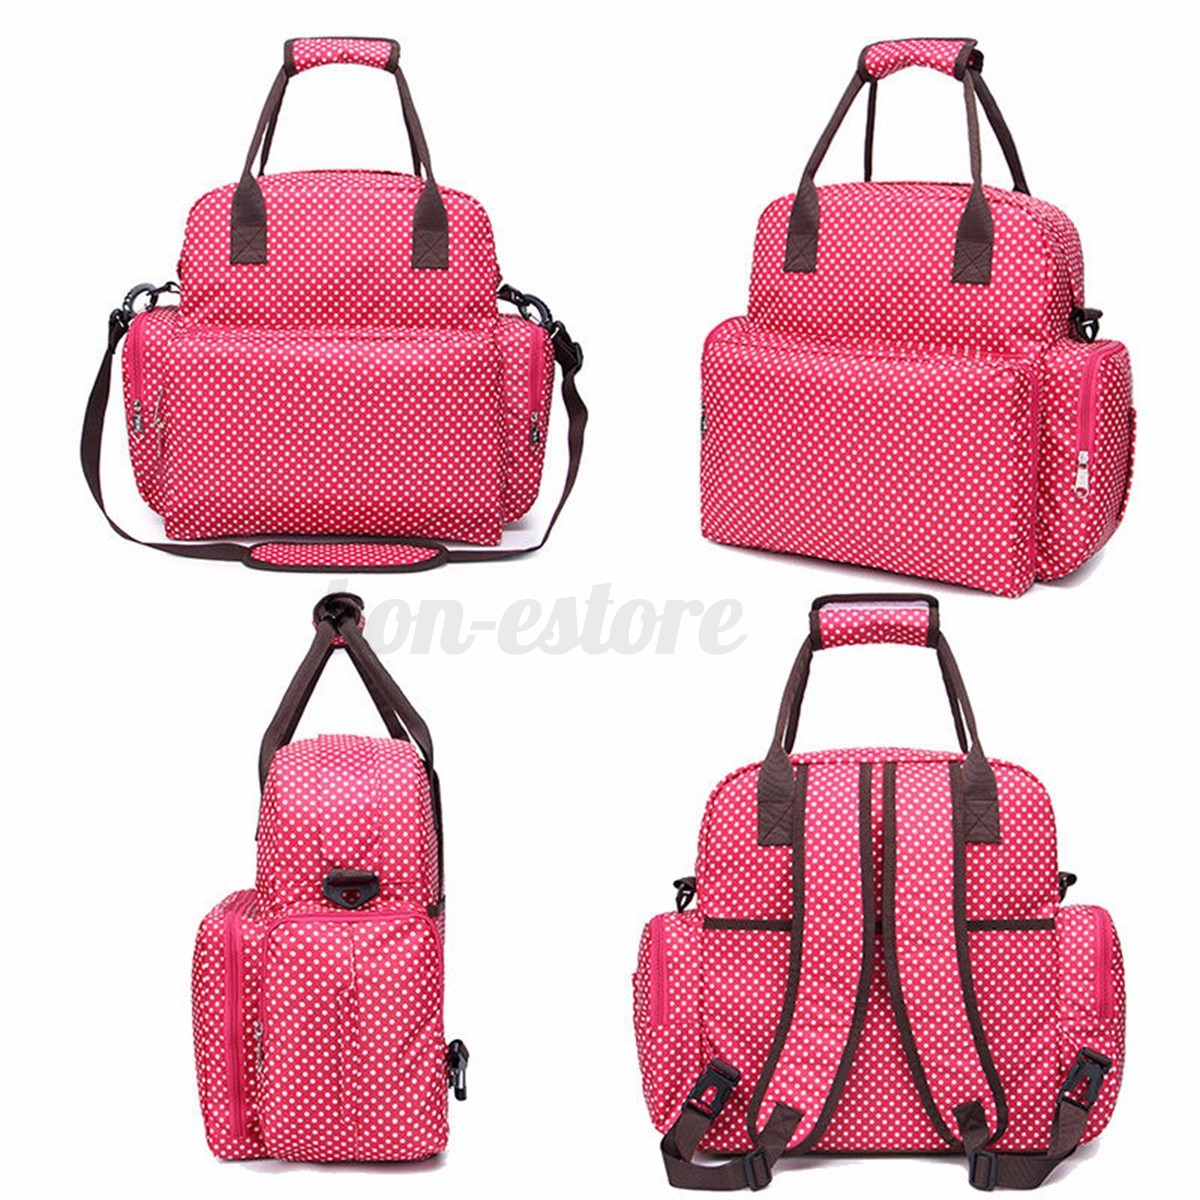 diaper backpack shoulder bag leather travel bags. Black Bedroom Furniture Sets. Home Design Ideas